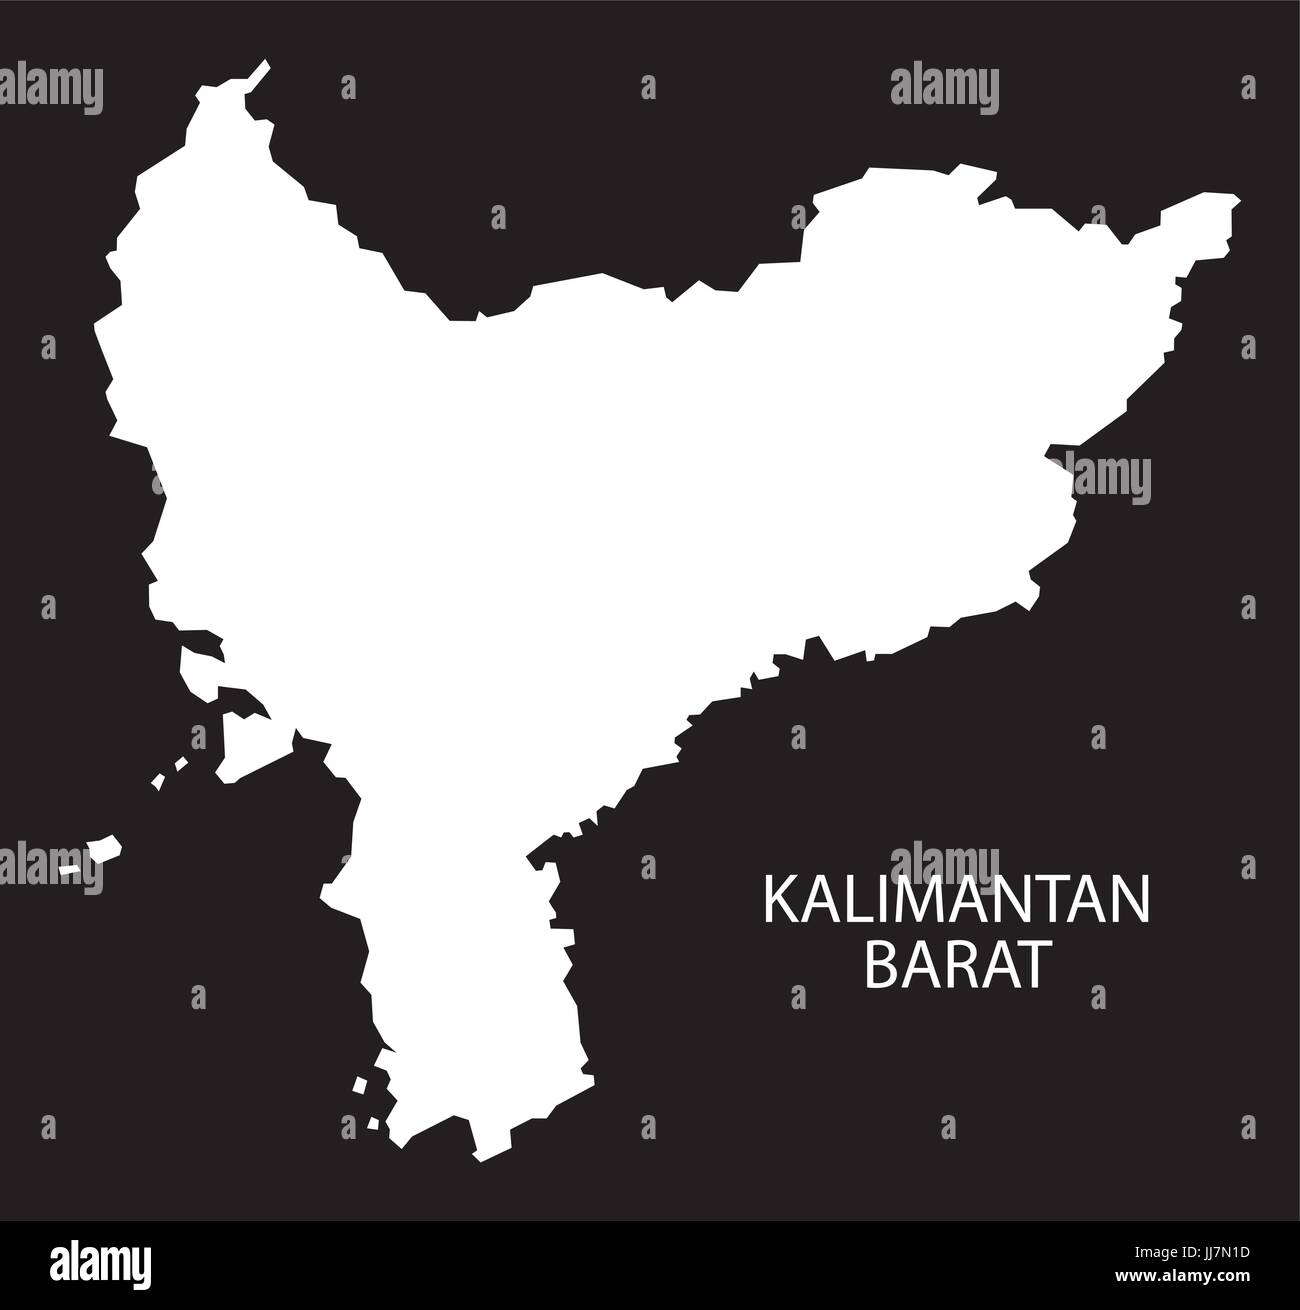 kalimantan vector vectors high resolution stock photography and images alamy https www alamy com stock photo kalimantan indonesia map black inverted silhouette illustration shape 148916921 html